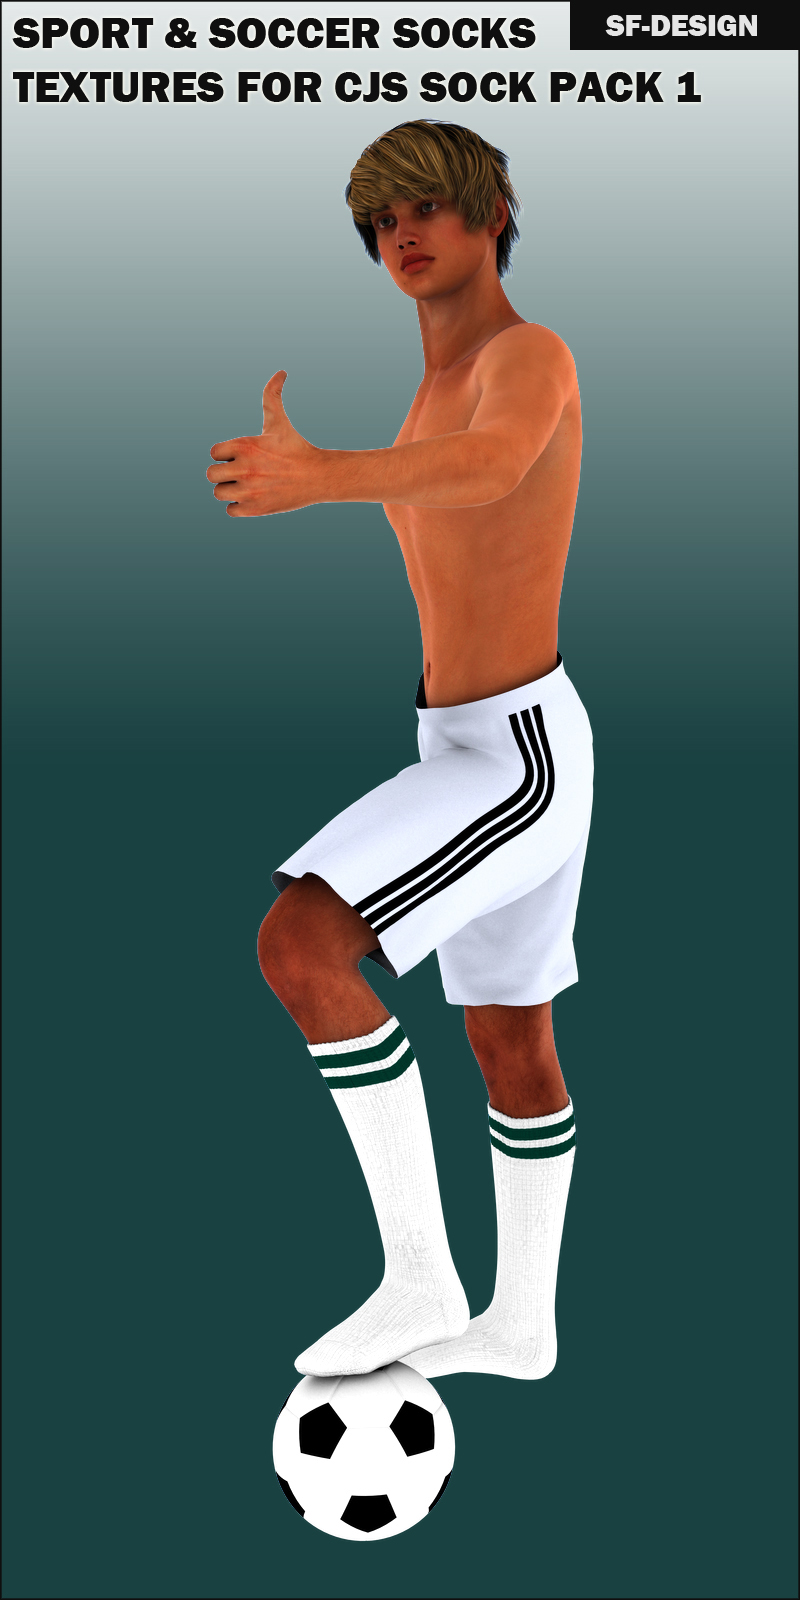 Sport and Soccer Socks Texture Add On for CJS Sock Pack 1 for Genesis